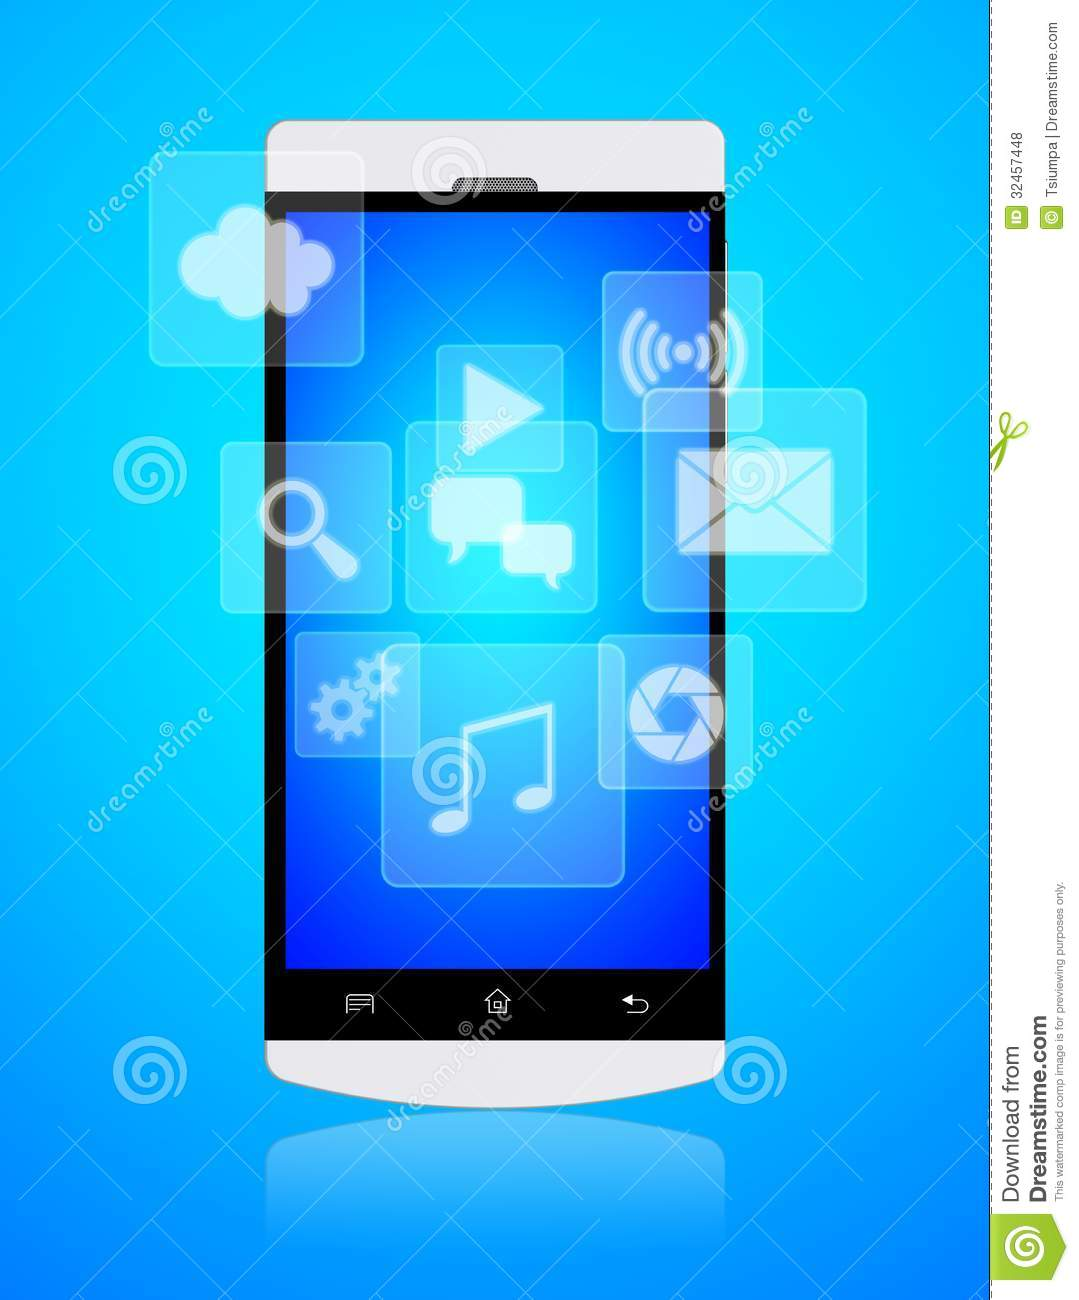 Smartphone Apps Royalty Free Stock Photos